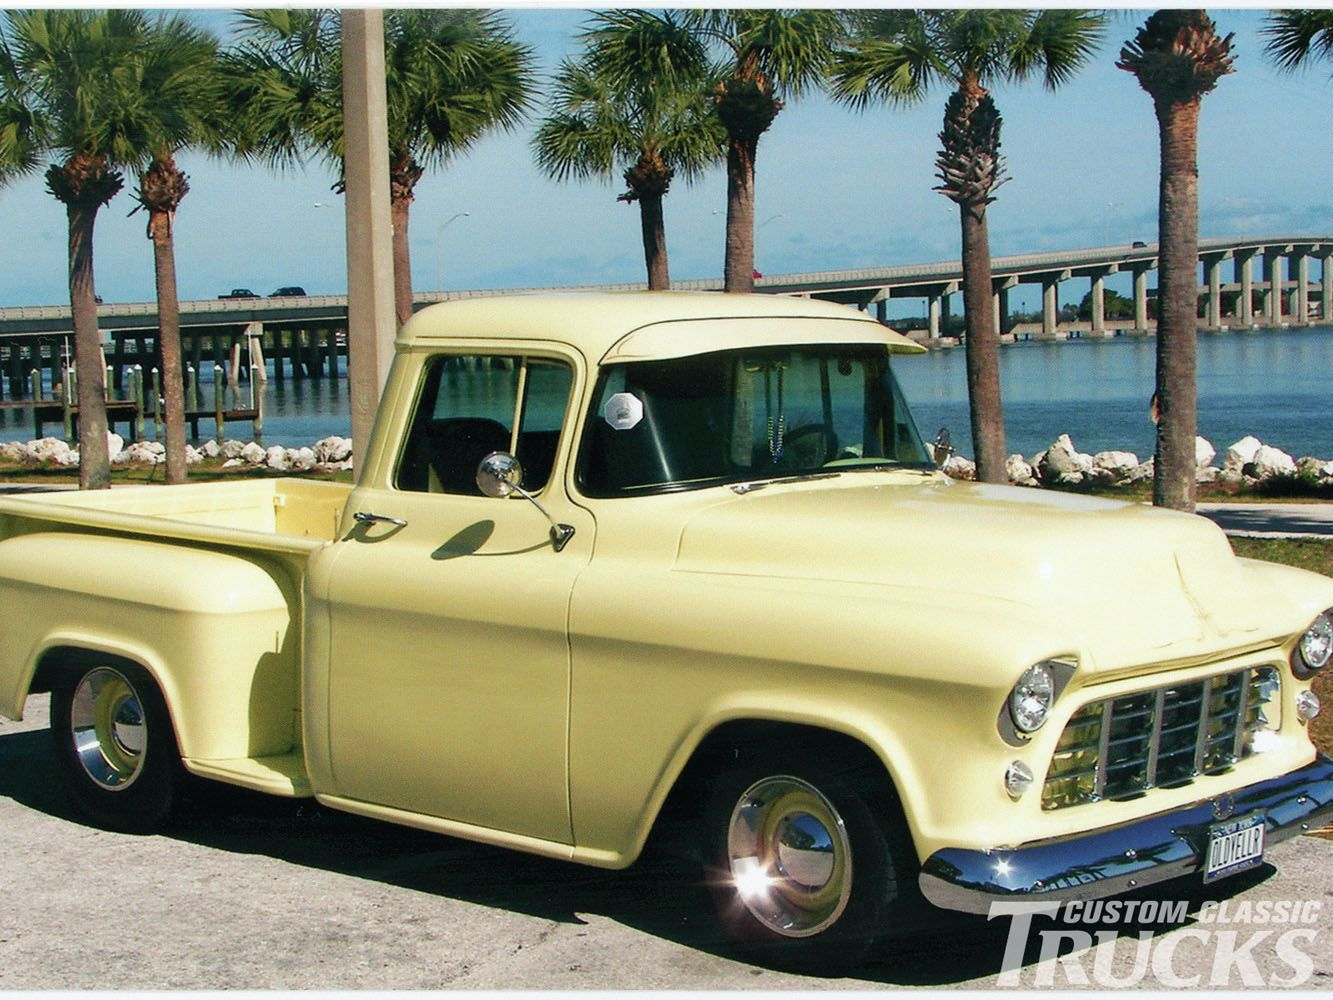 Truck 1955 chevy apache truck for sale : 1955 Chevy Pickup | 1955 Second Series Chevy/GMC Pickup Truck | 55 ...